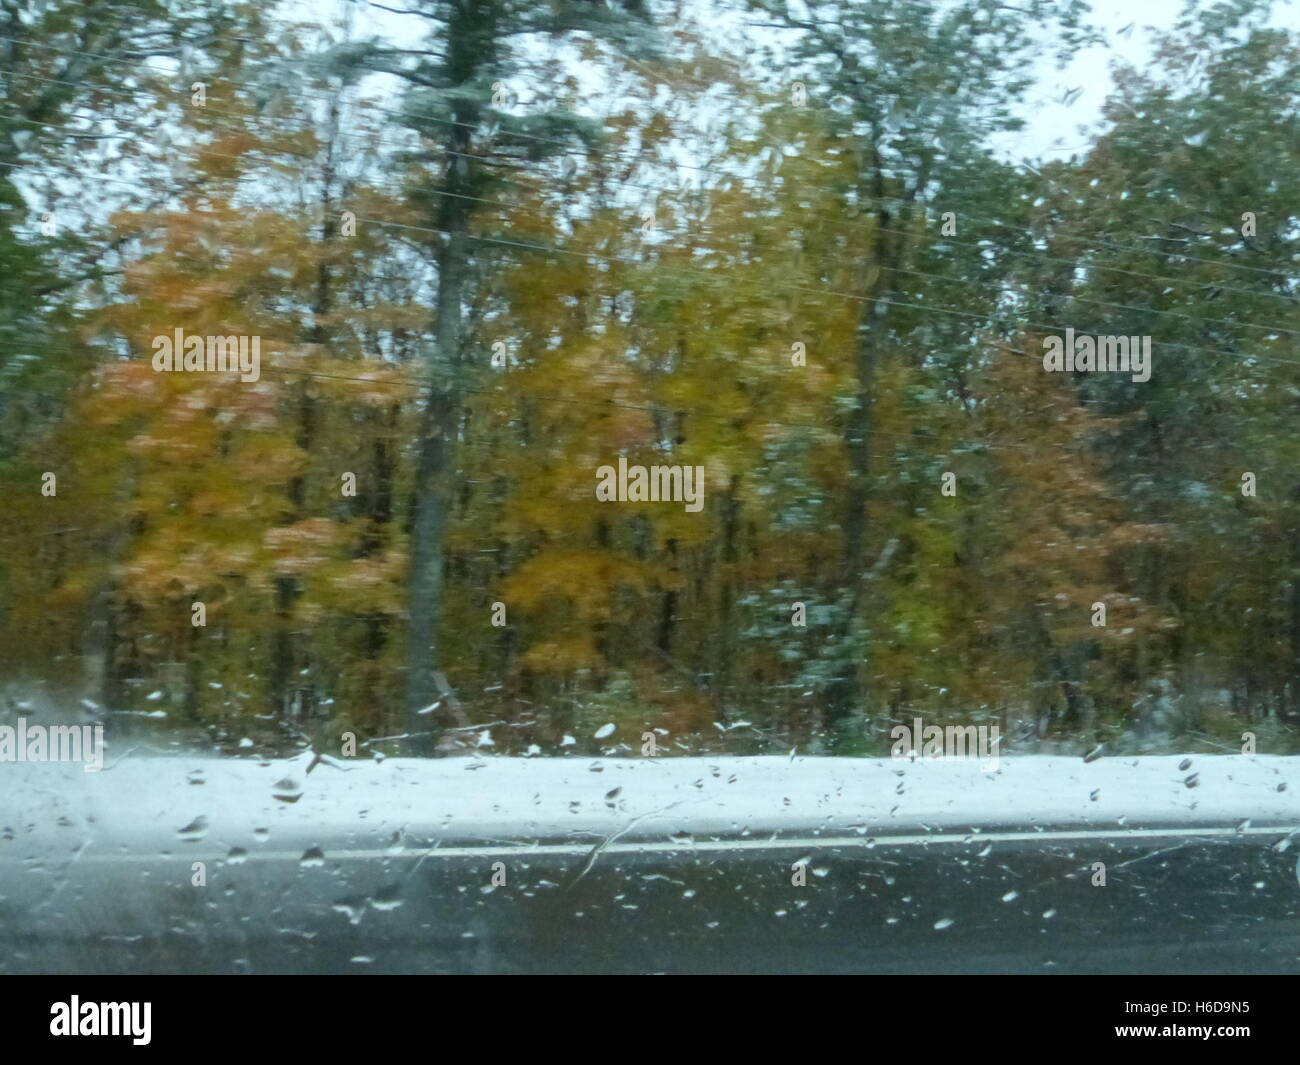 Road during slippery winter conditions - Stock Image